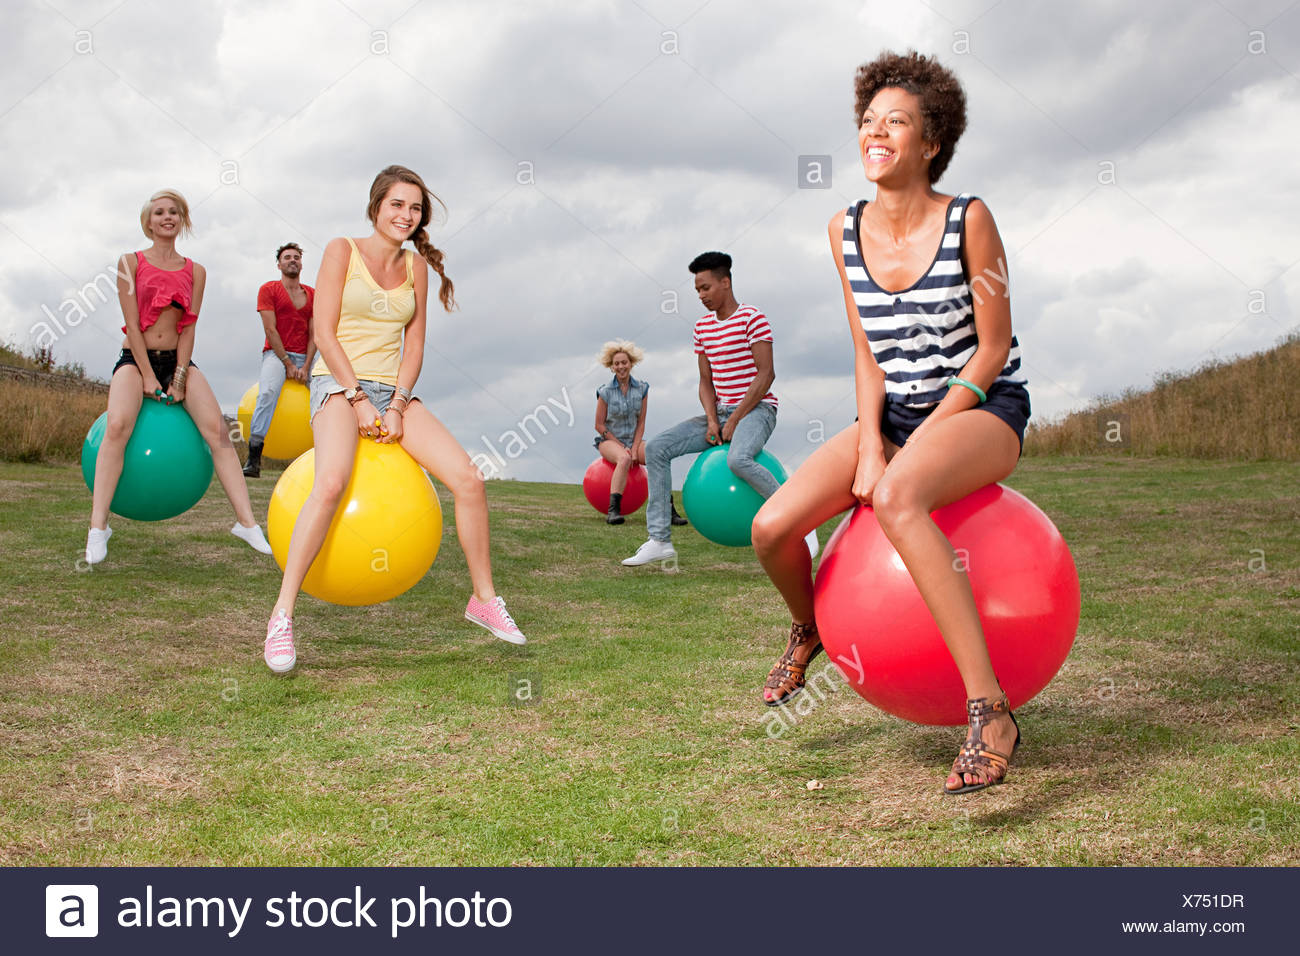 Young people bouncing on hoppity horses - Stock Image